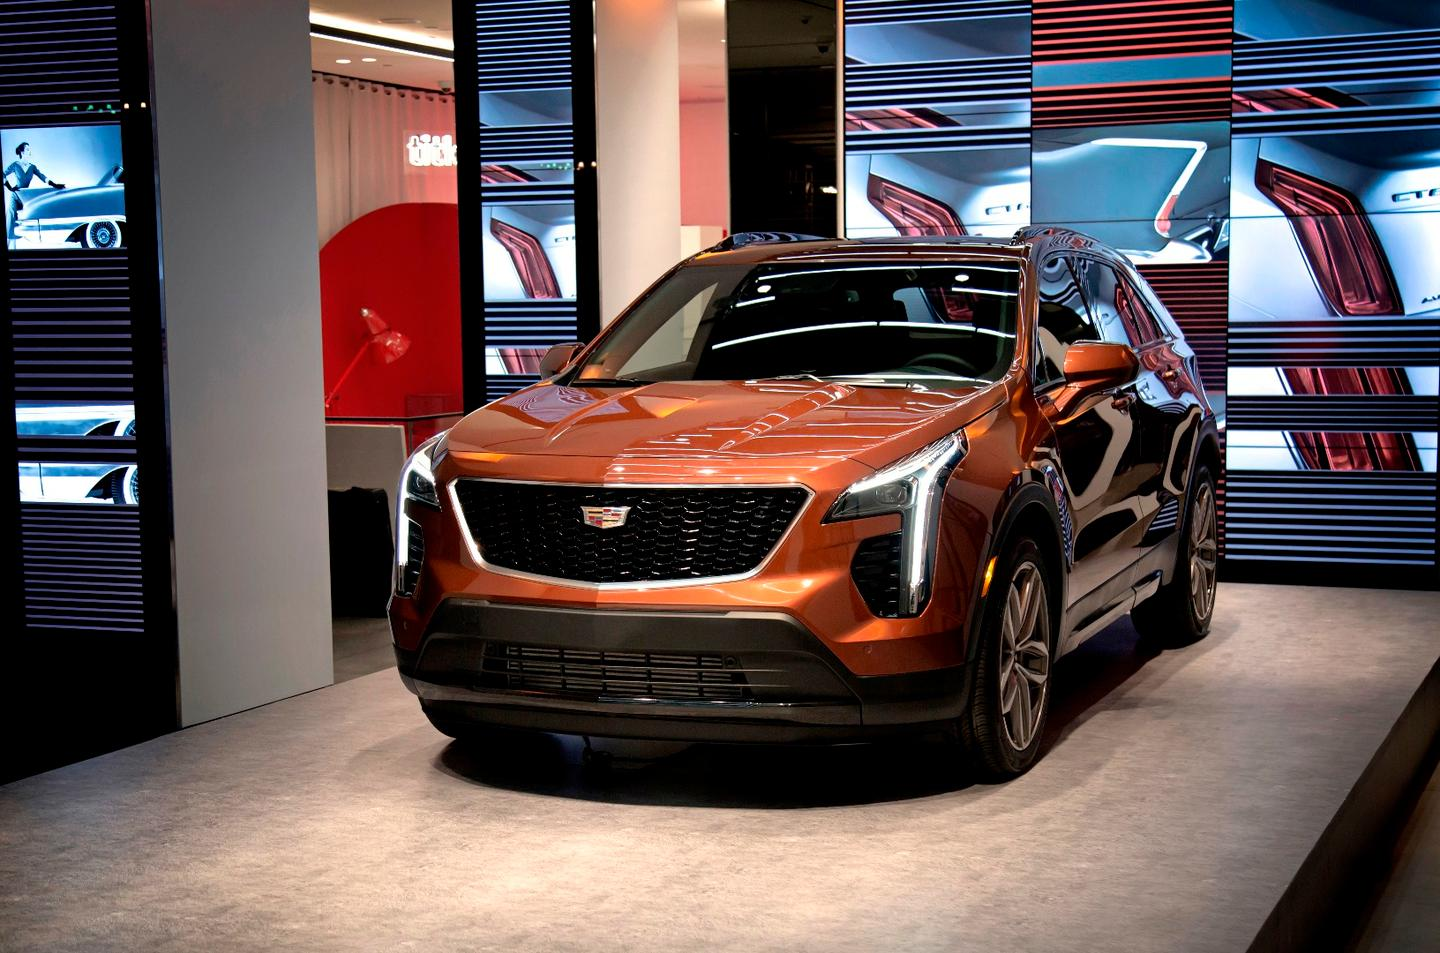 The front-end of the XT4 is unmistakably Cadillac with the blade-style LED daytime running lamps and a large mesh grille